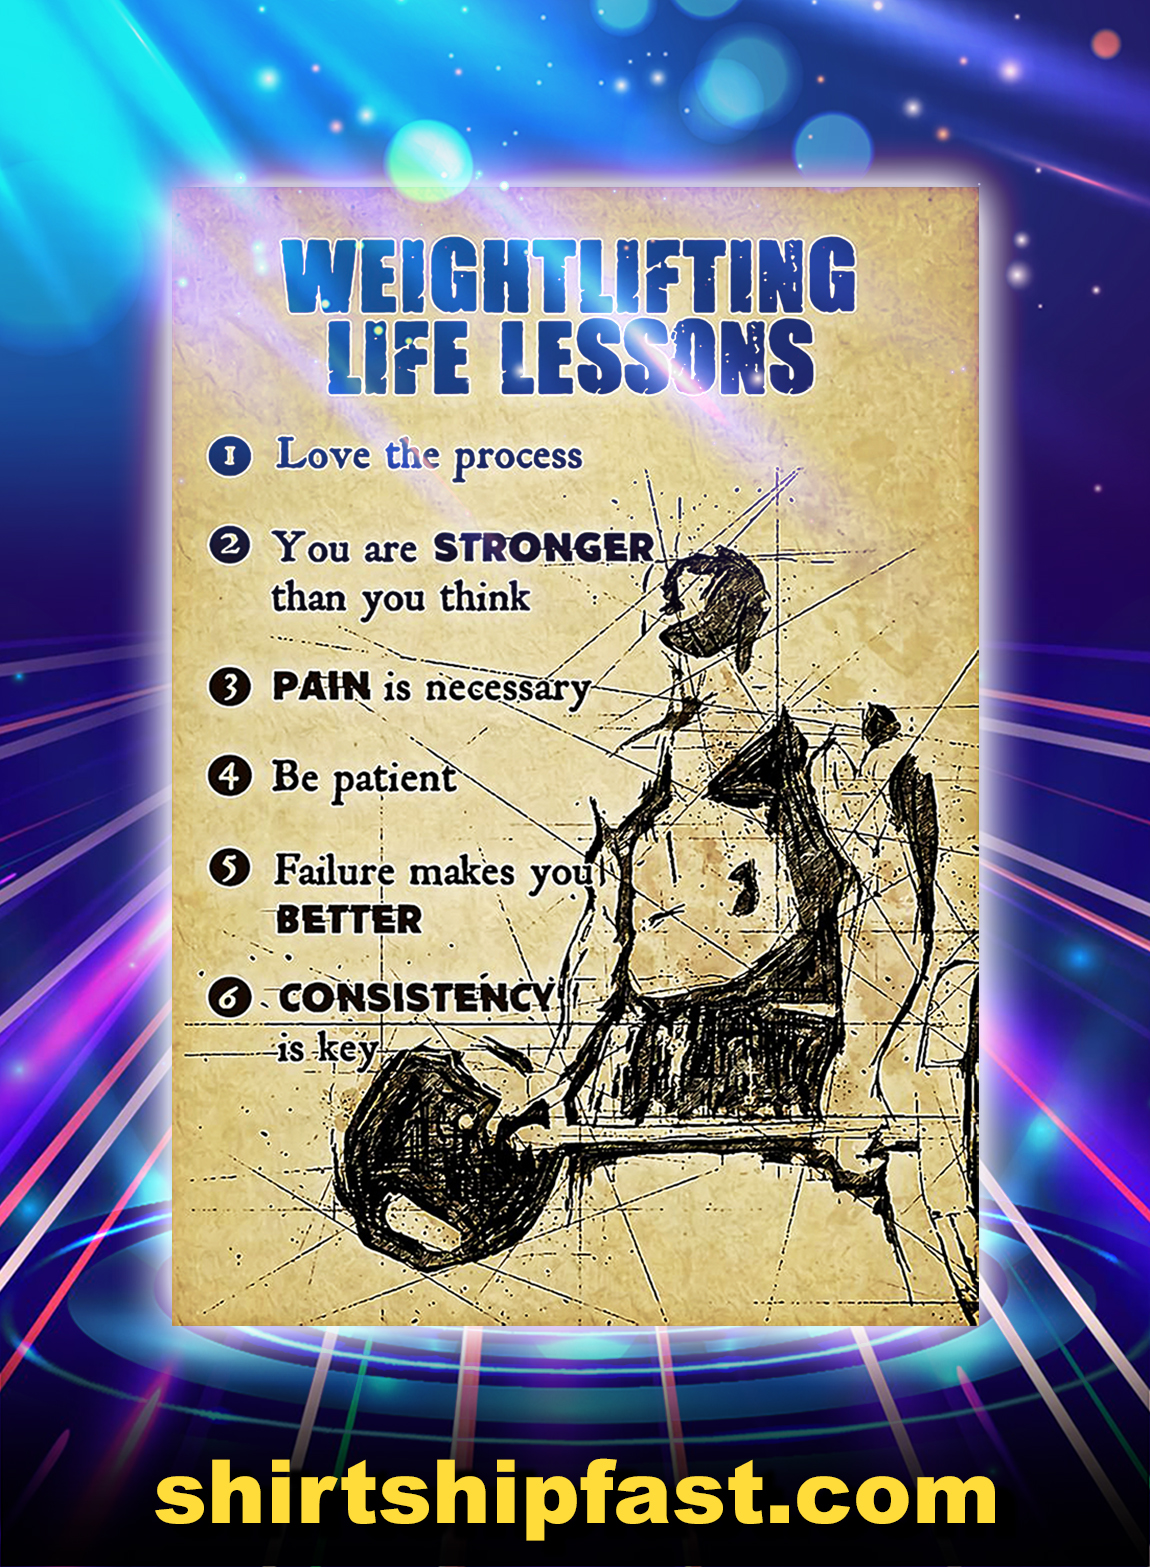 Fitness weightlifting life lessons poster - A2